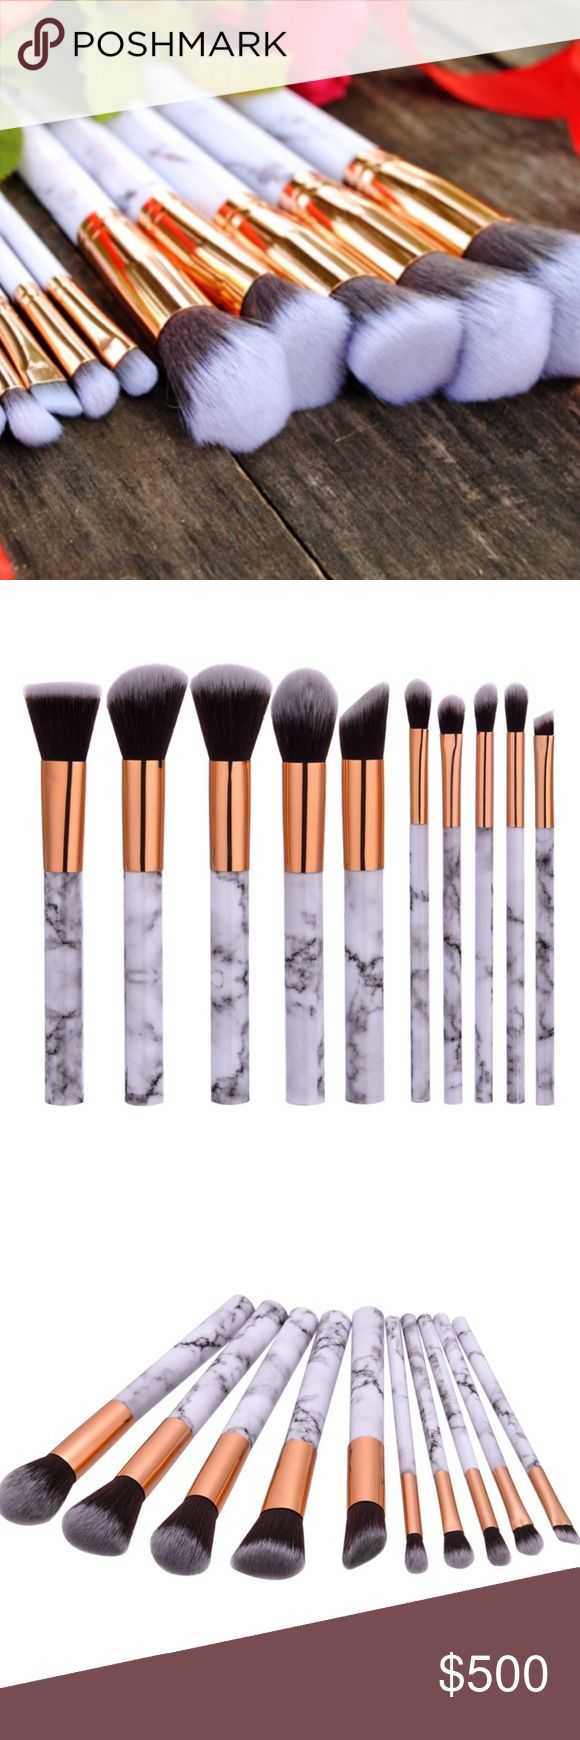 🎉HP❗️10 Piece Marble Pattern Makeup Brush Set White and gray marble pattern handle. Synthetic brush. Limited quantities! Brushes will arrive in a sealed bag. Makeup Brushes & Tools